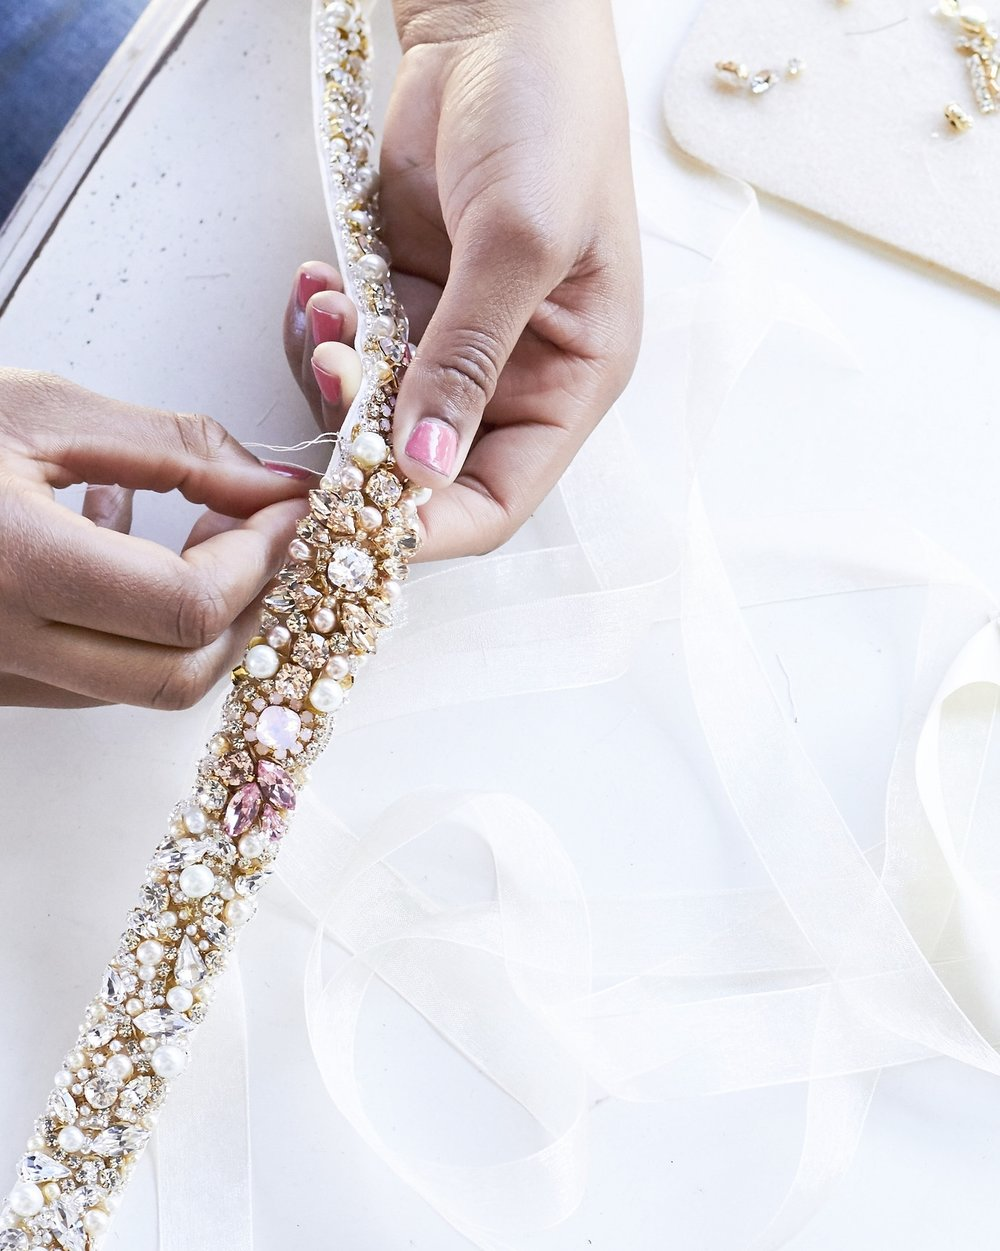 Connect with a Designer - We love connecting on a more personal level with our brides. Whether it's to design a custom piece or to answer any questions about our designs, send us a message! Your request will be answered in a timely manner.